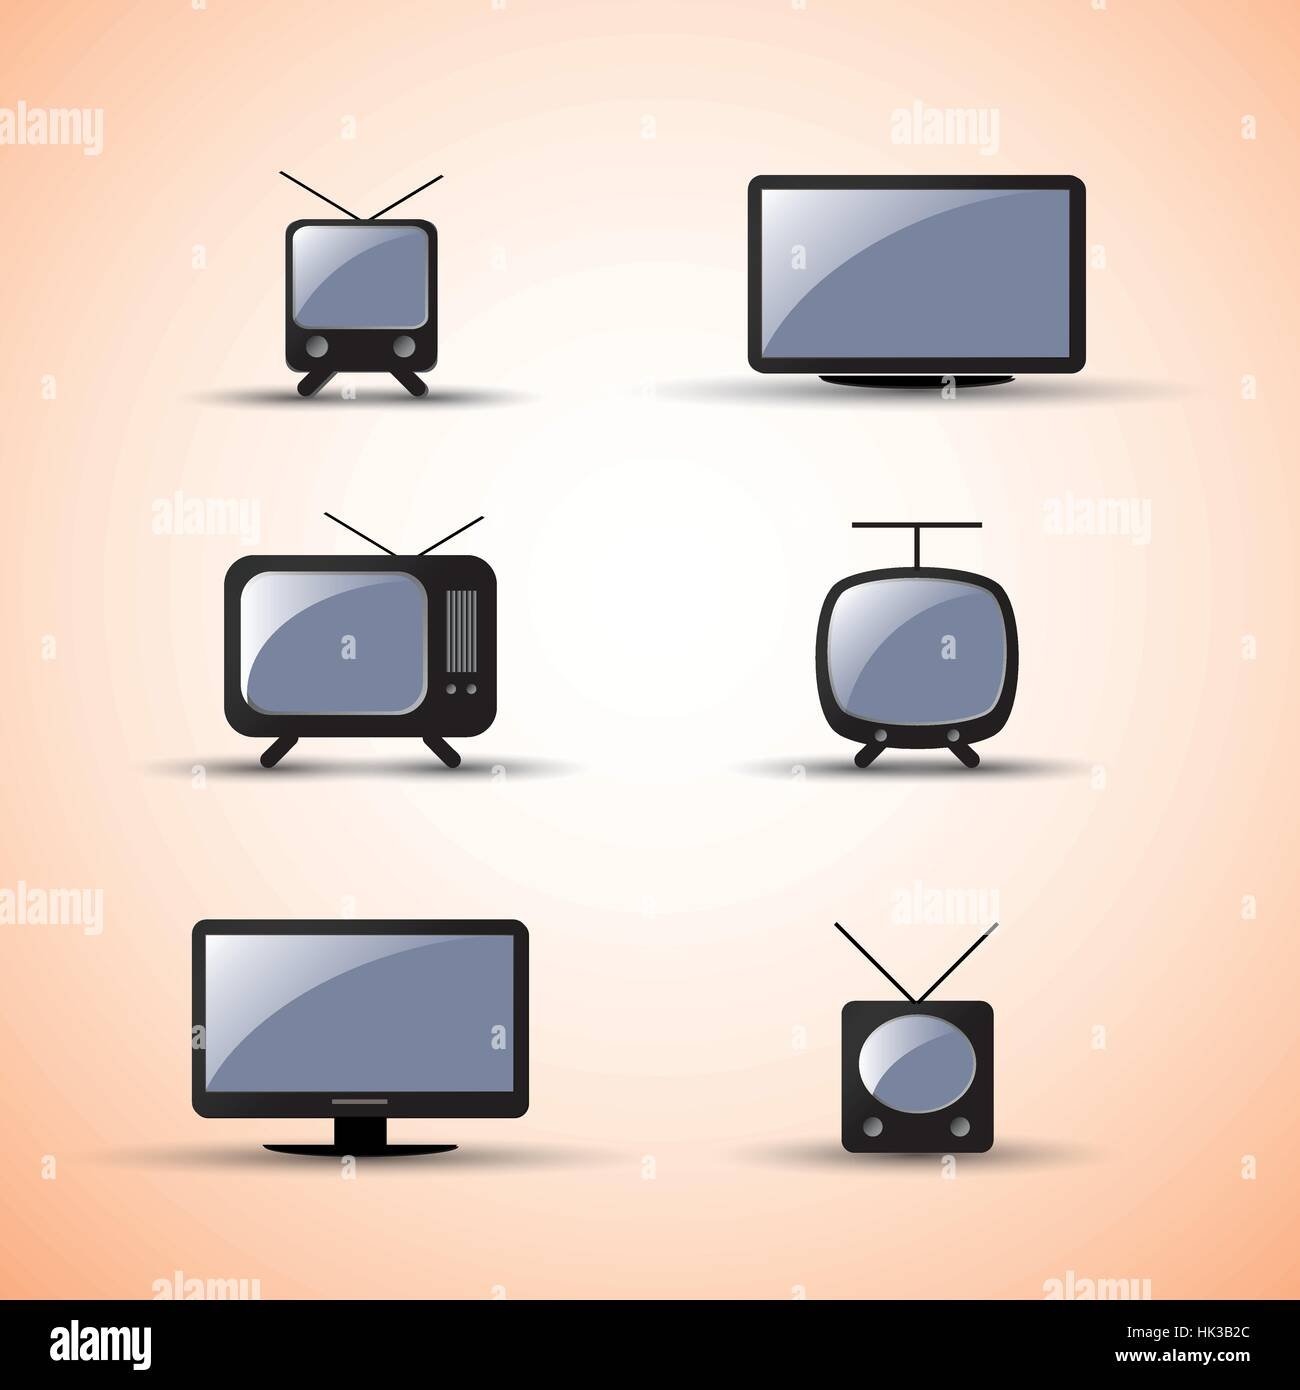 Web, Design Elements, Black and White Icons of Modern and Vintage Electronic Devices - Stock Image